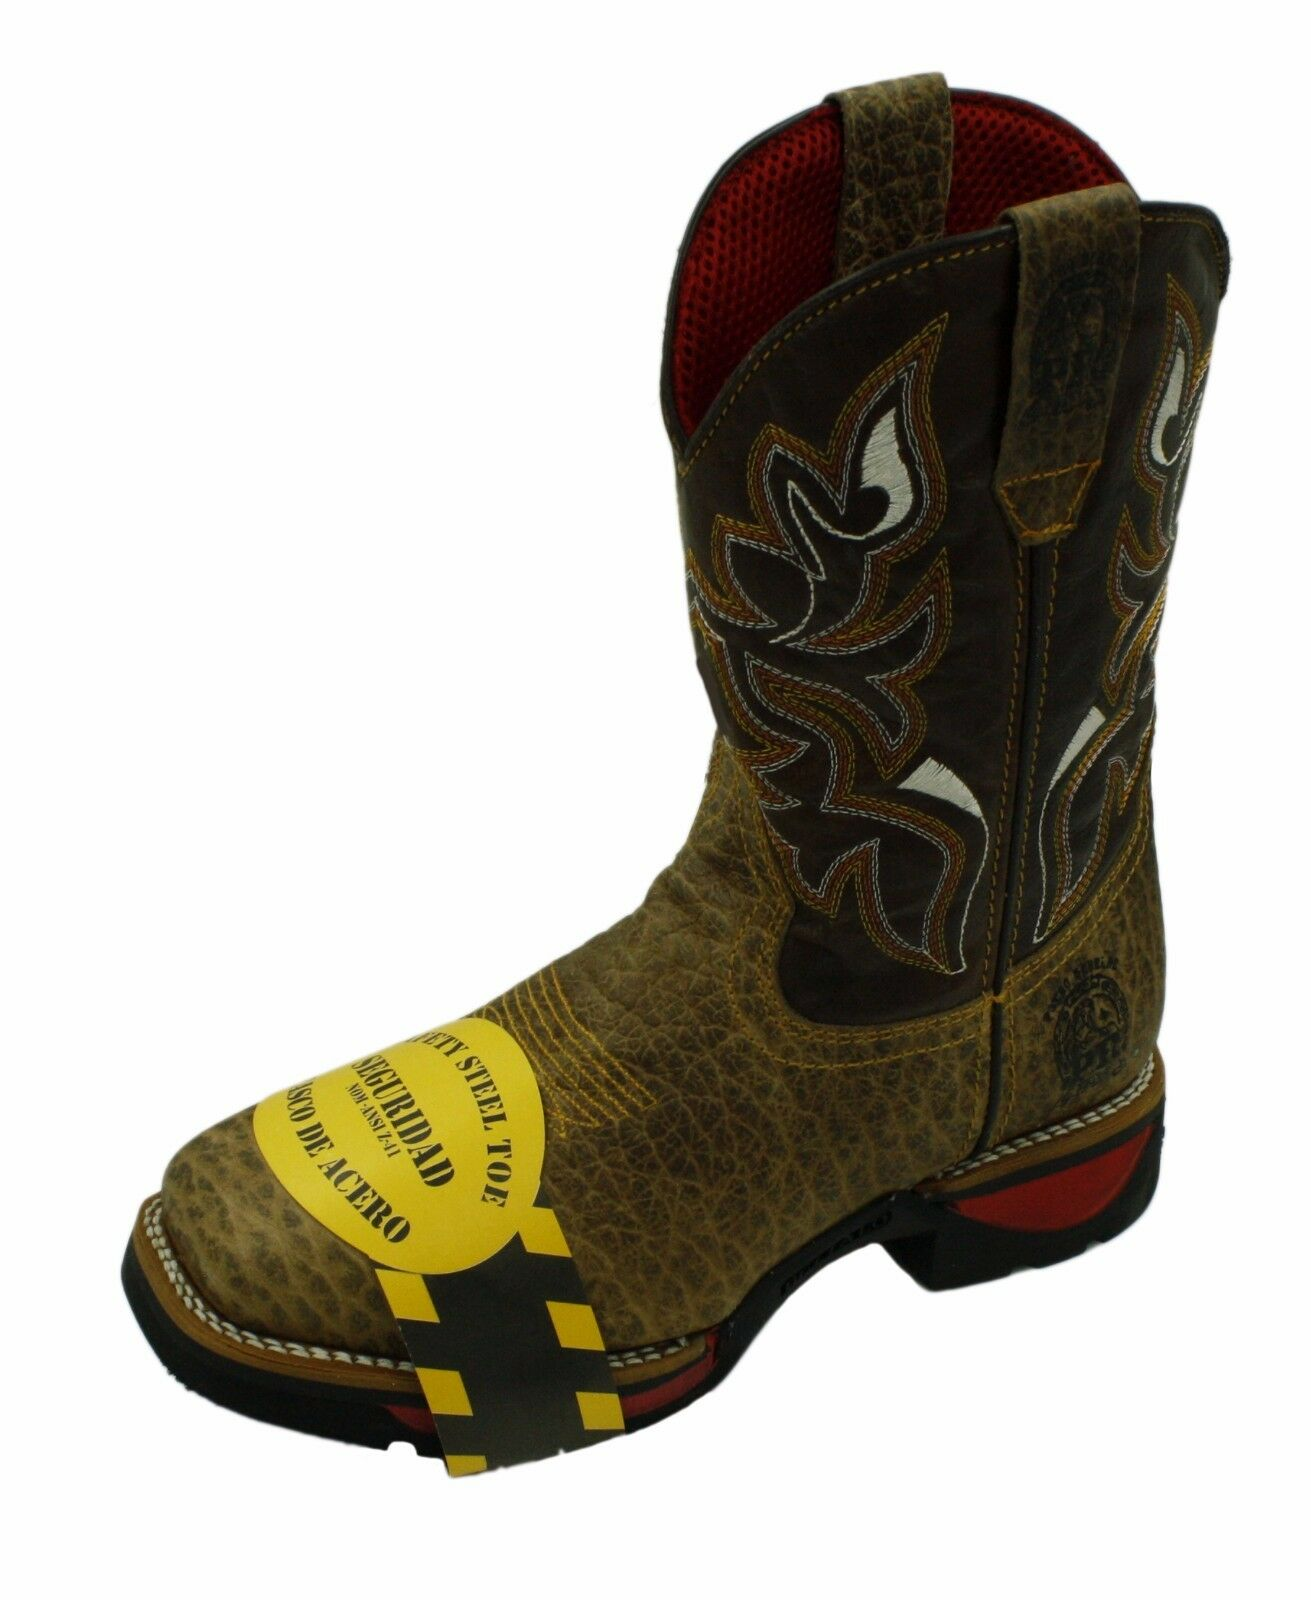 Men Genuine Cowboy Rodeo Western Leather Boots With Steel Toe # PR82W2795